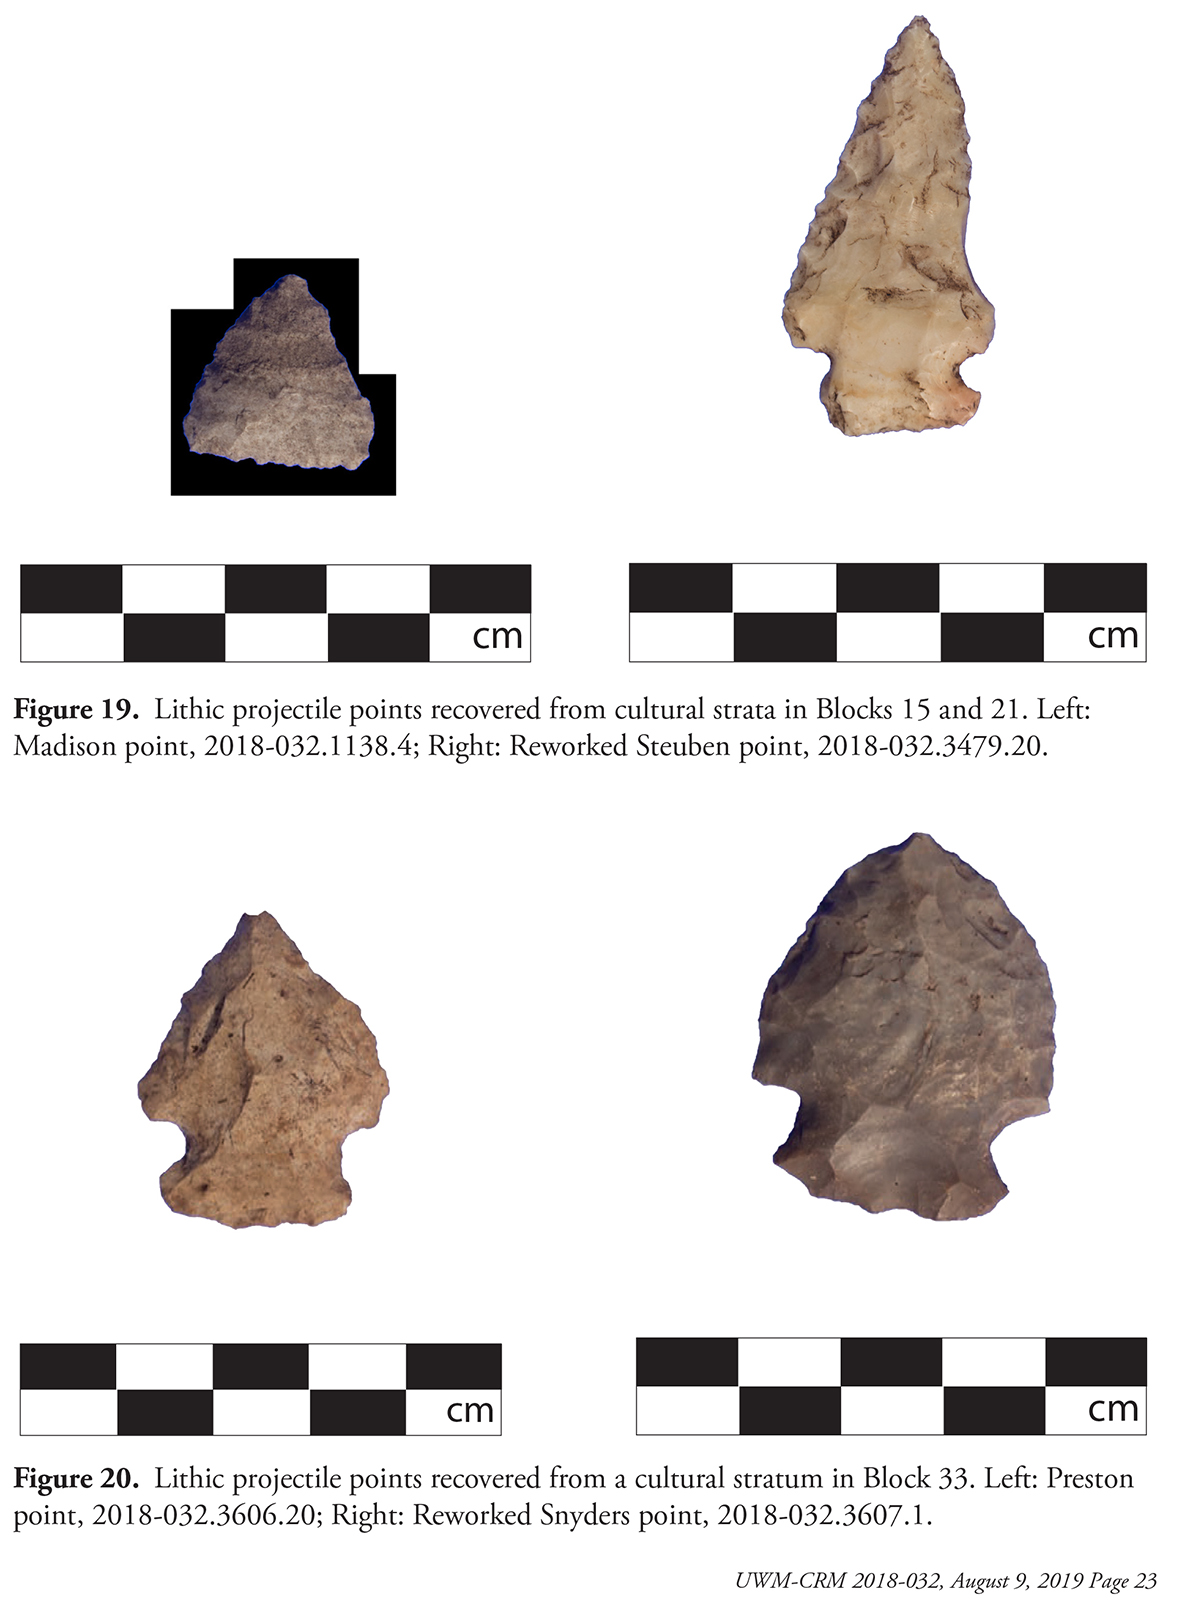 Four stone projectile points displayed alongside centimeter measurement markers